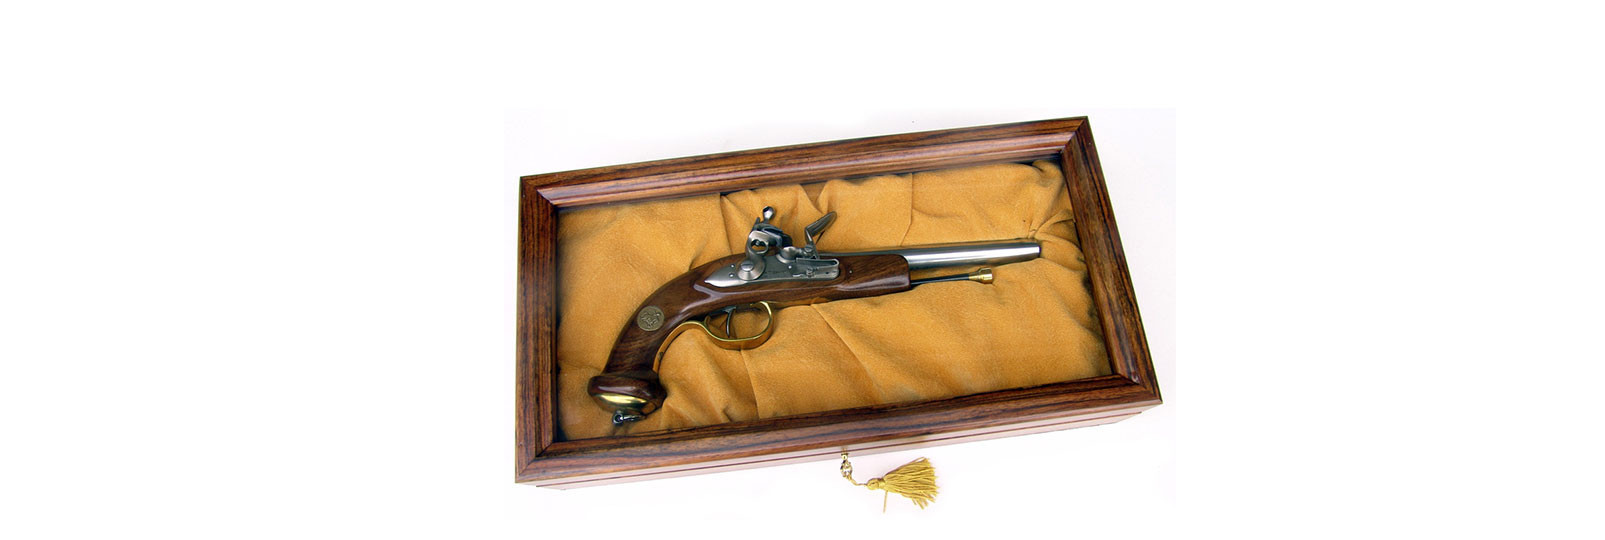 Mamelouk commemorative Pistol with case